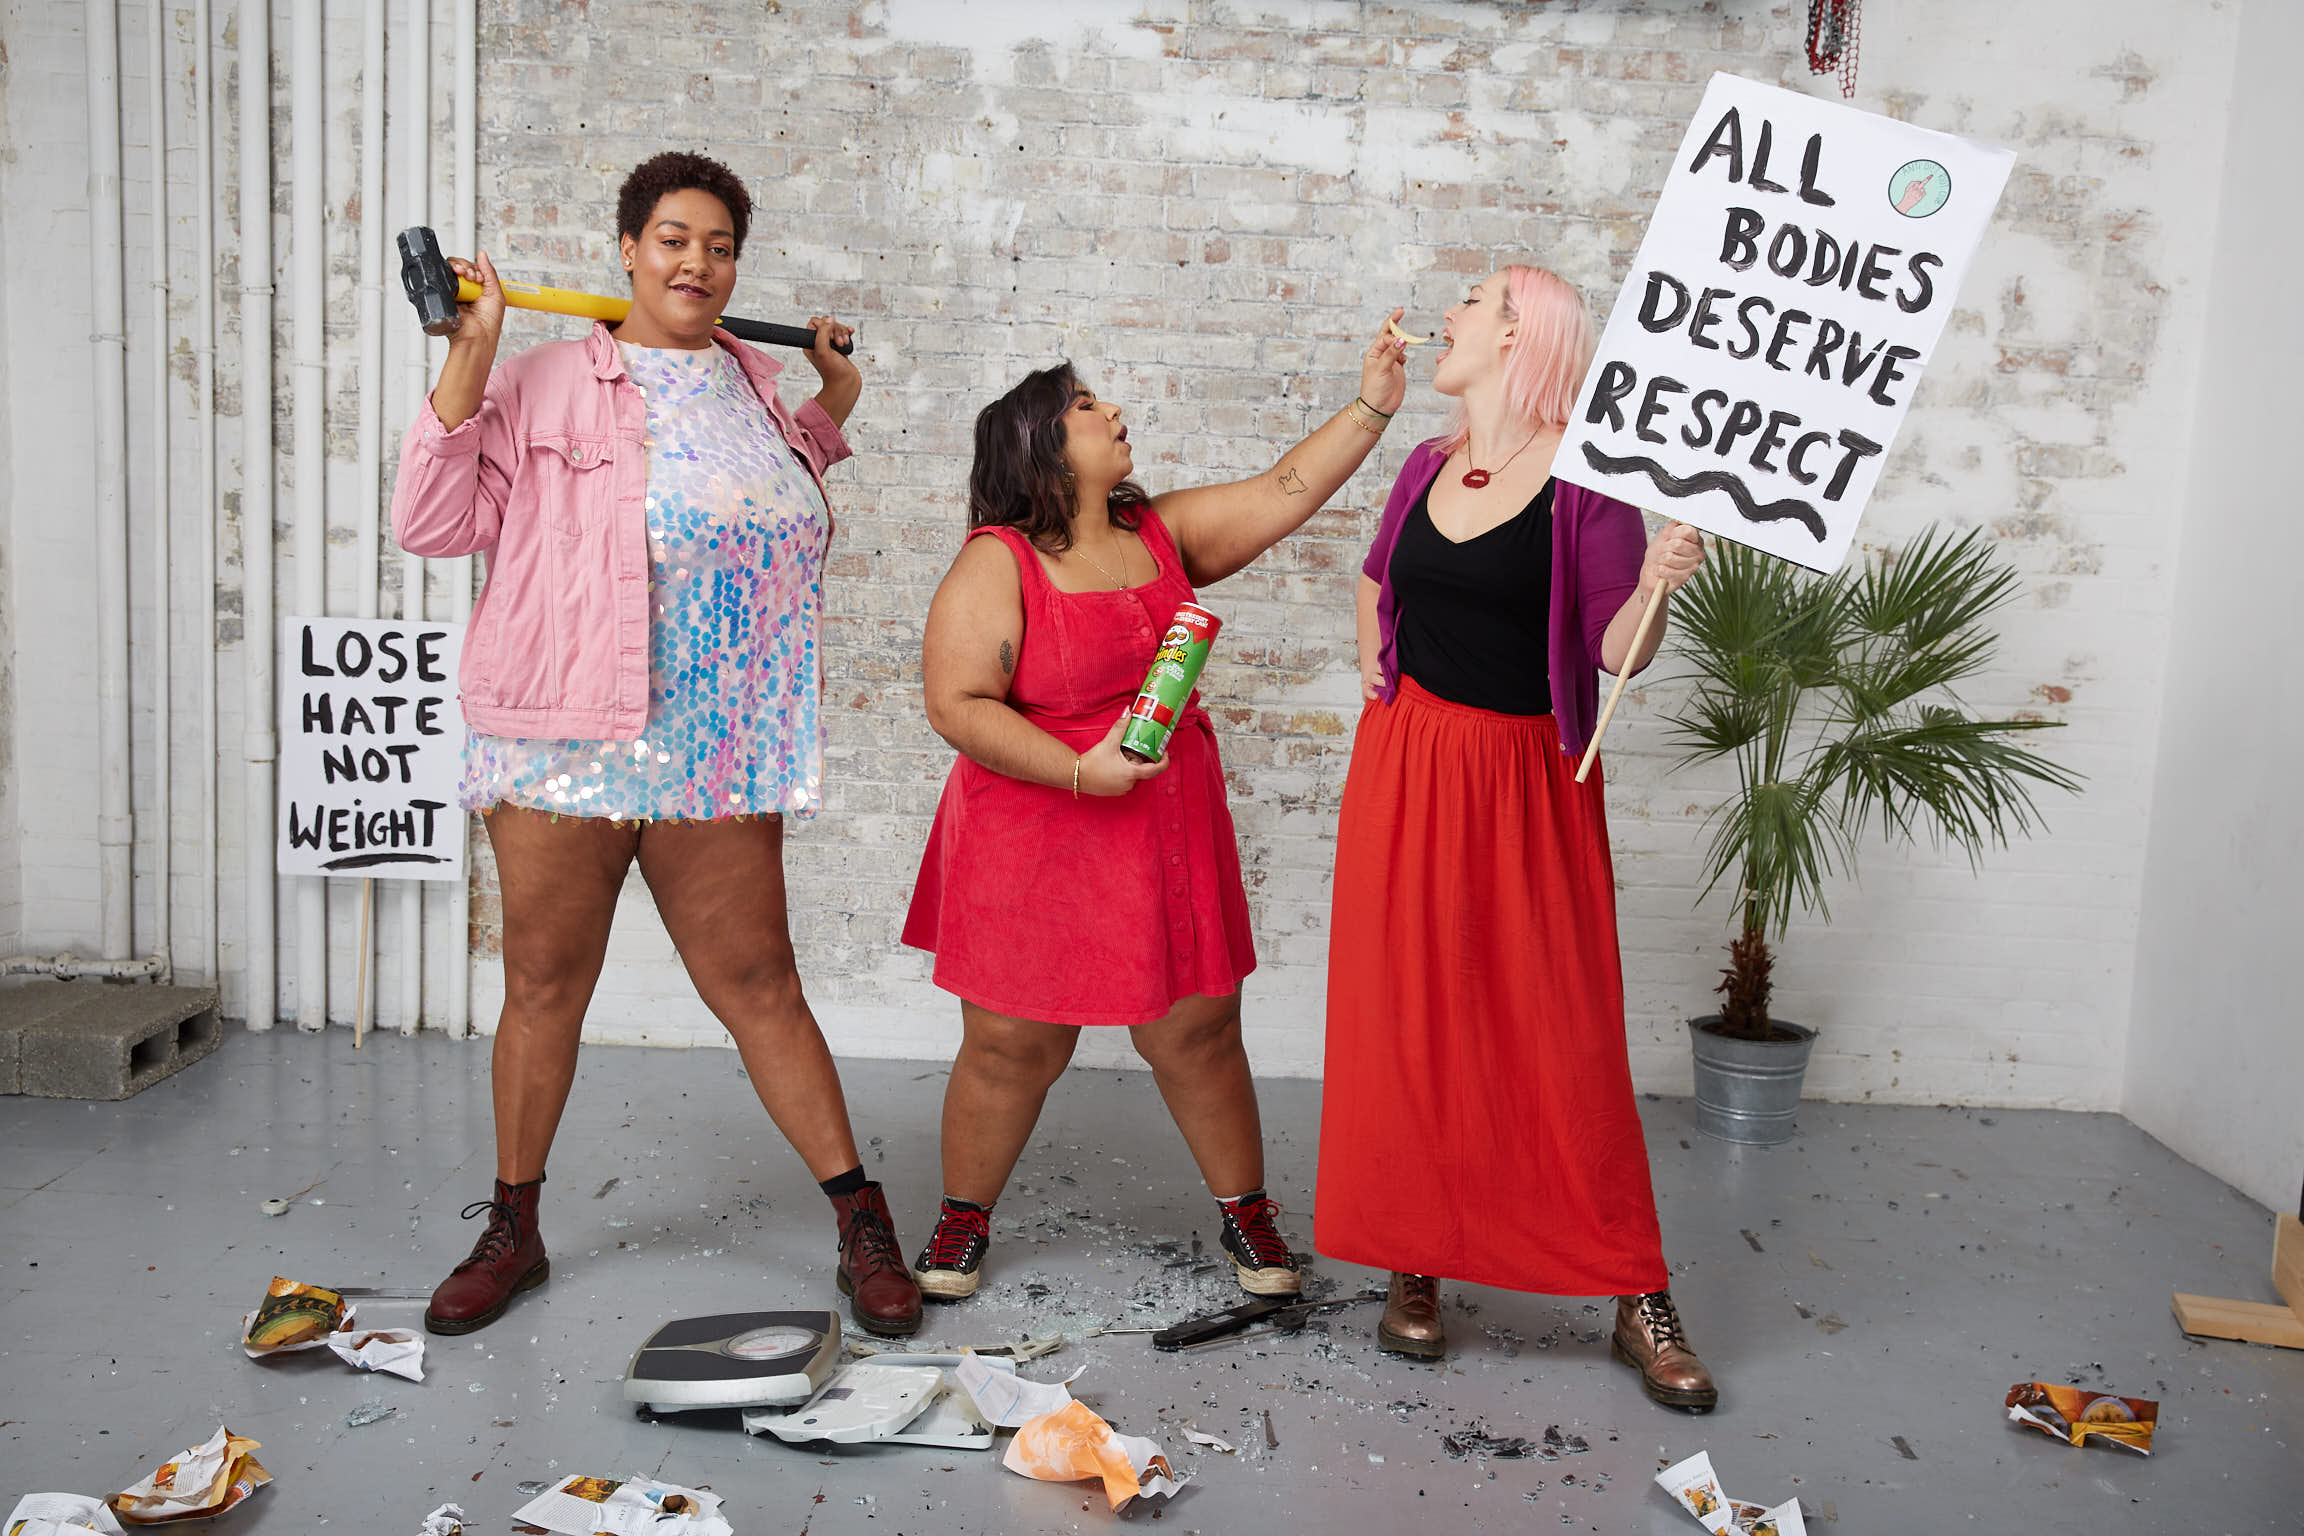 Members of the Anti Diet Riot Club Community having fun eating snacks with protest signs